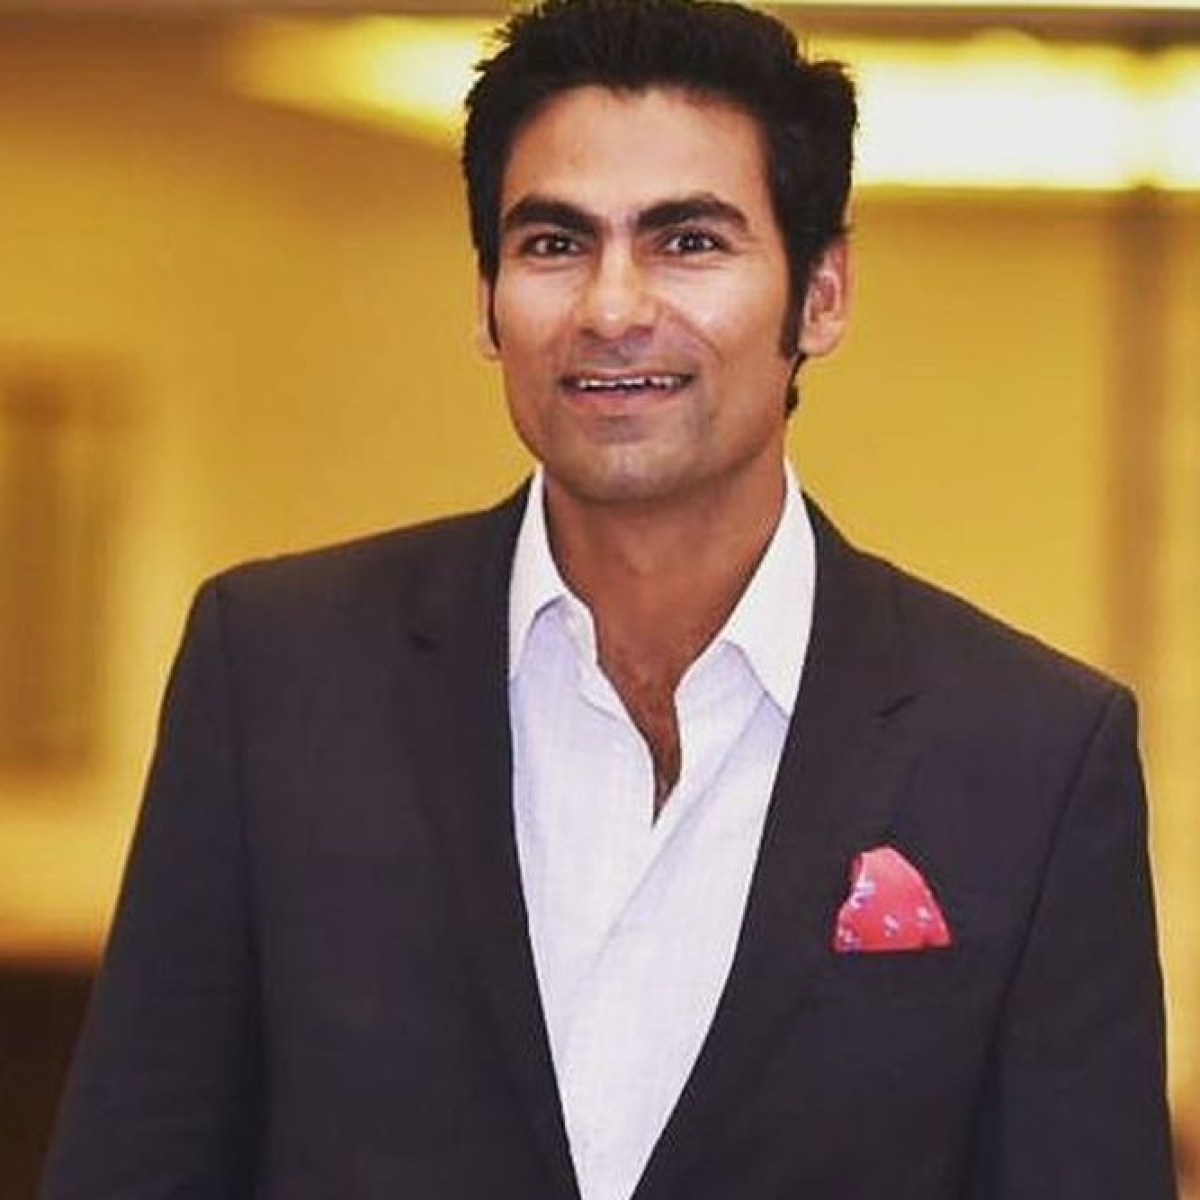 'Hate should not come in the way of love and unity': Mohammad Kaif on Ayodhya Ram temple ceremony